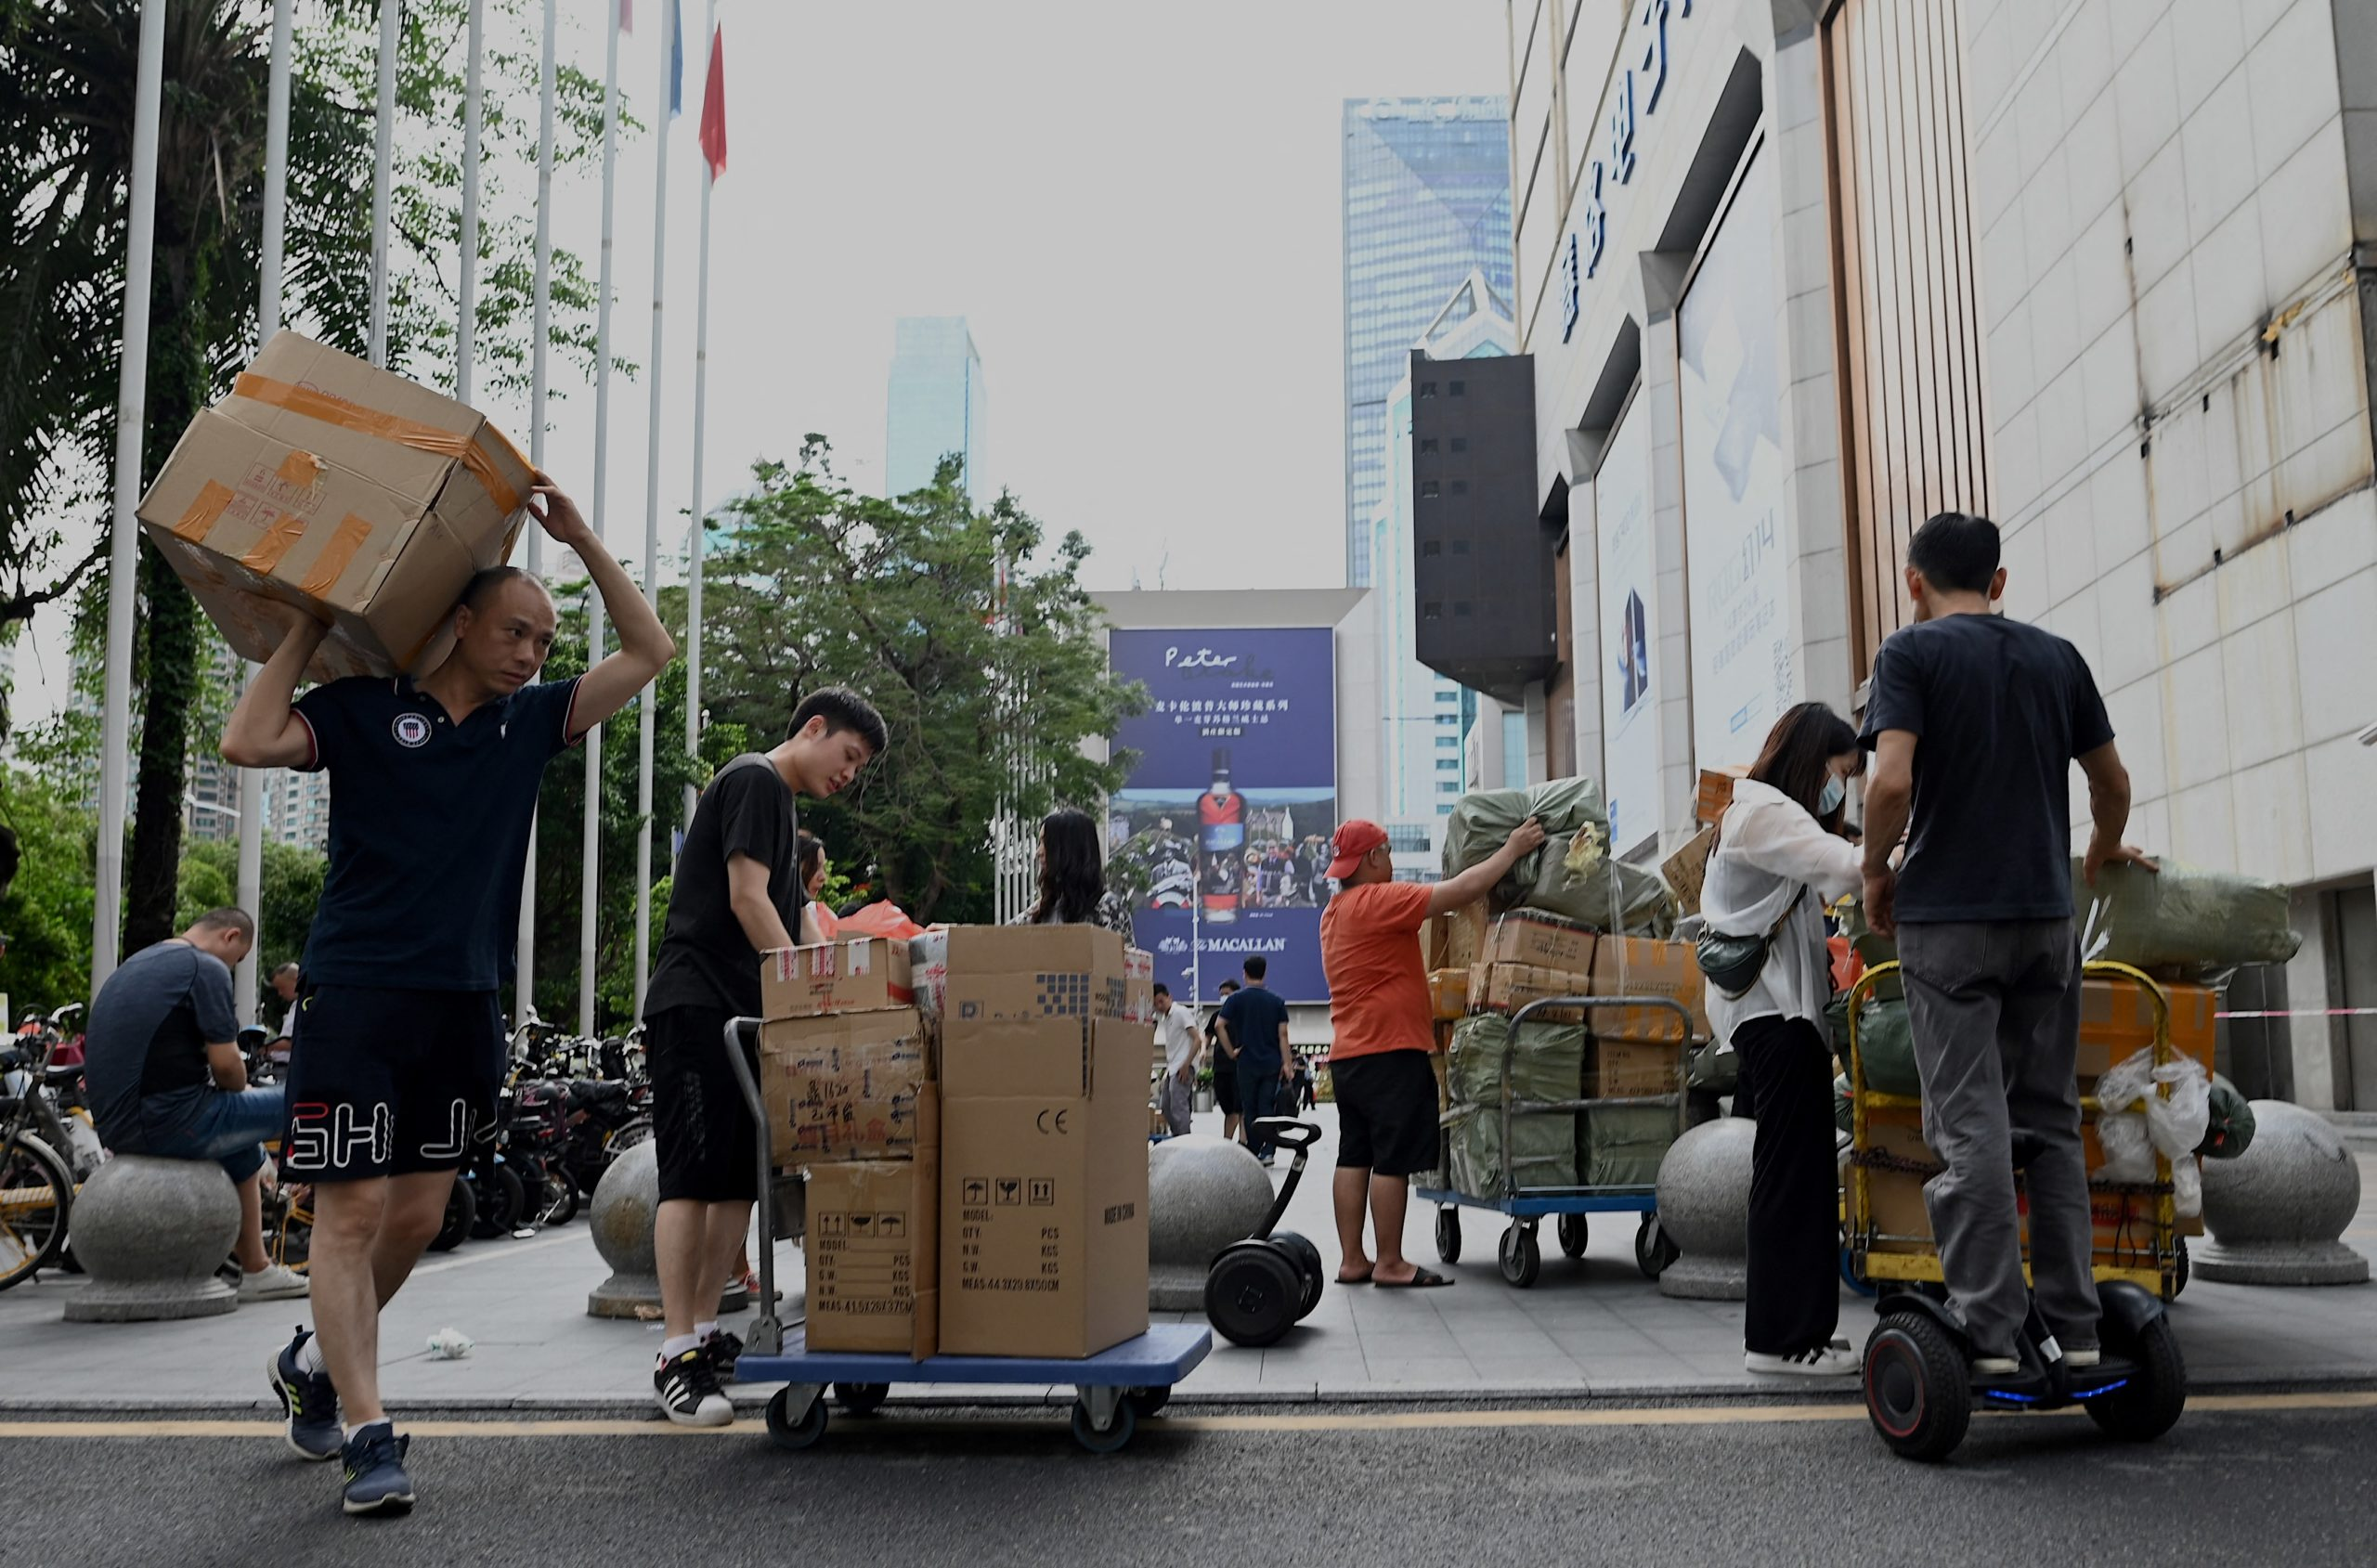 Workers move boxes in Shenzhen, one of China's special economic zones. (Photo by NOEL CELIS/AFP via Getty Images)